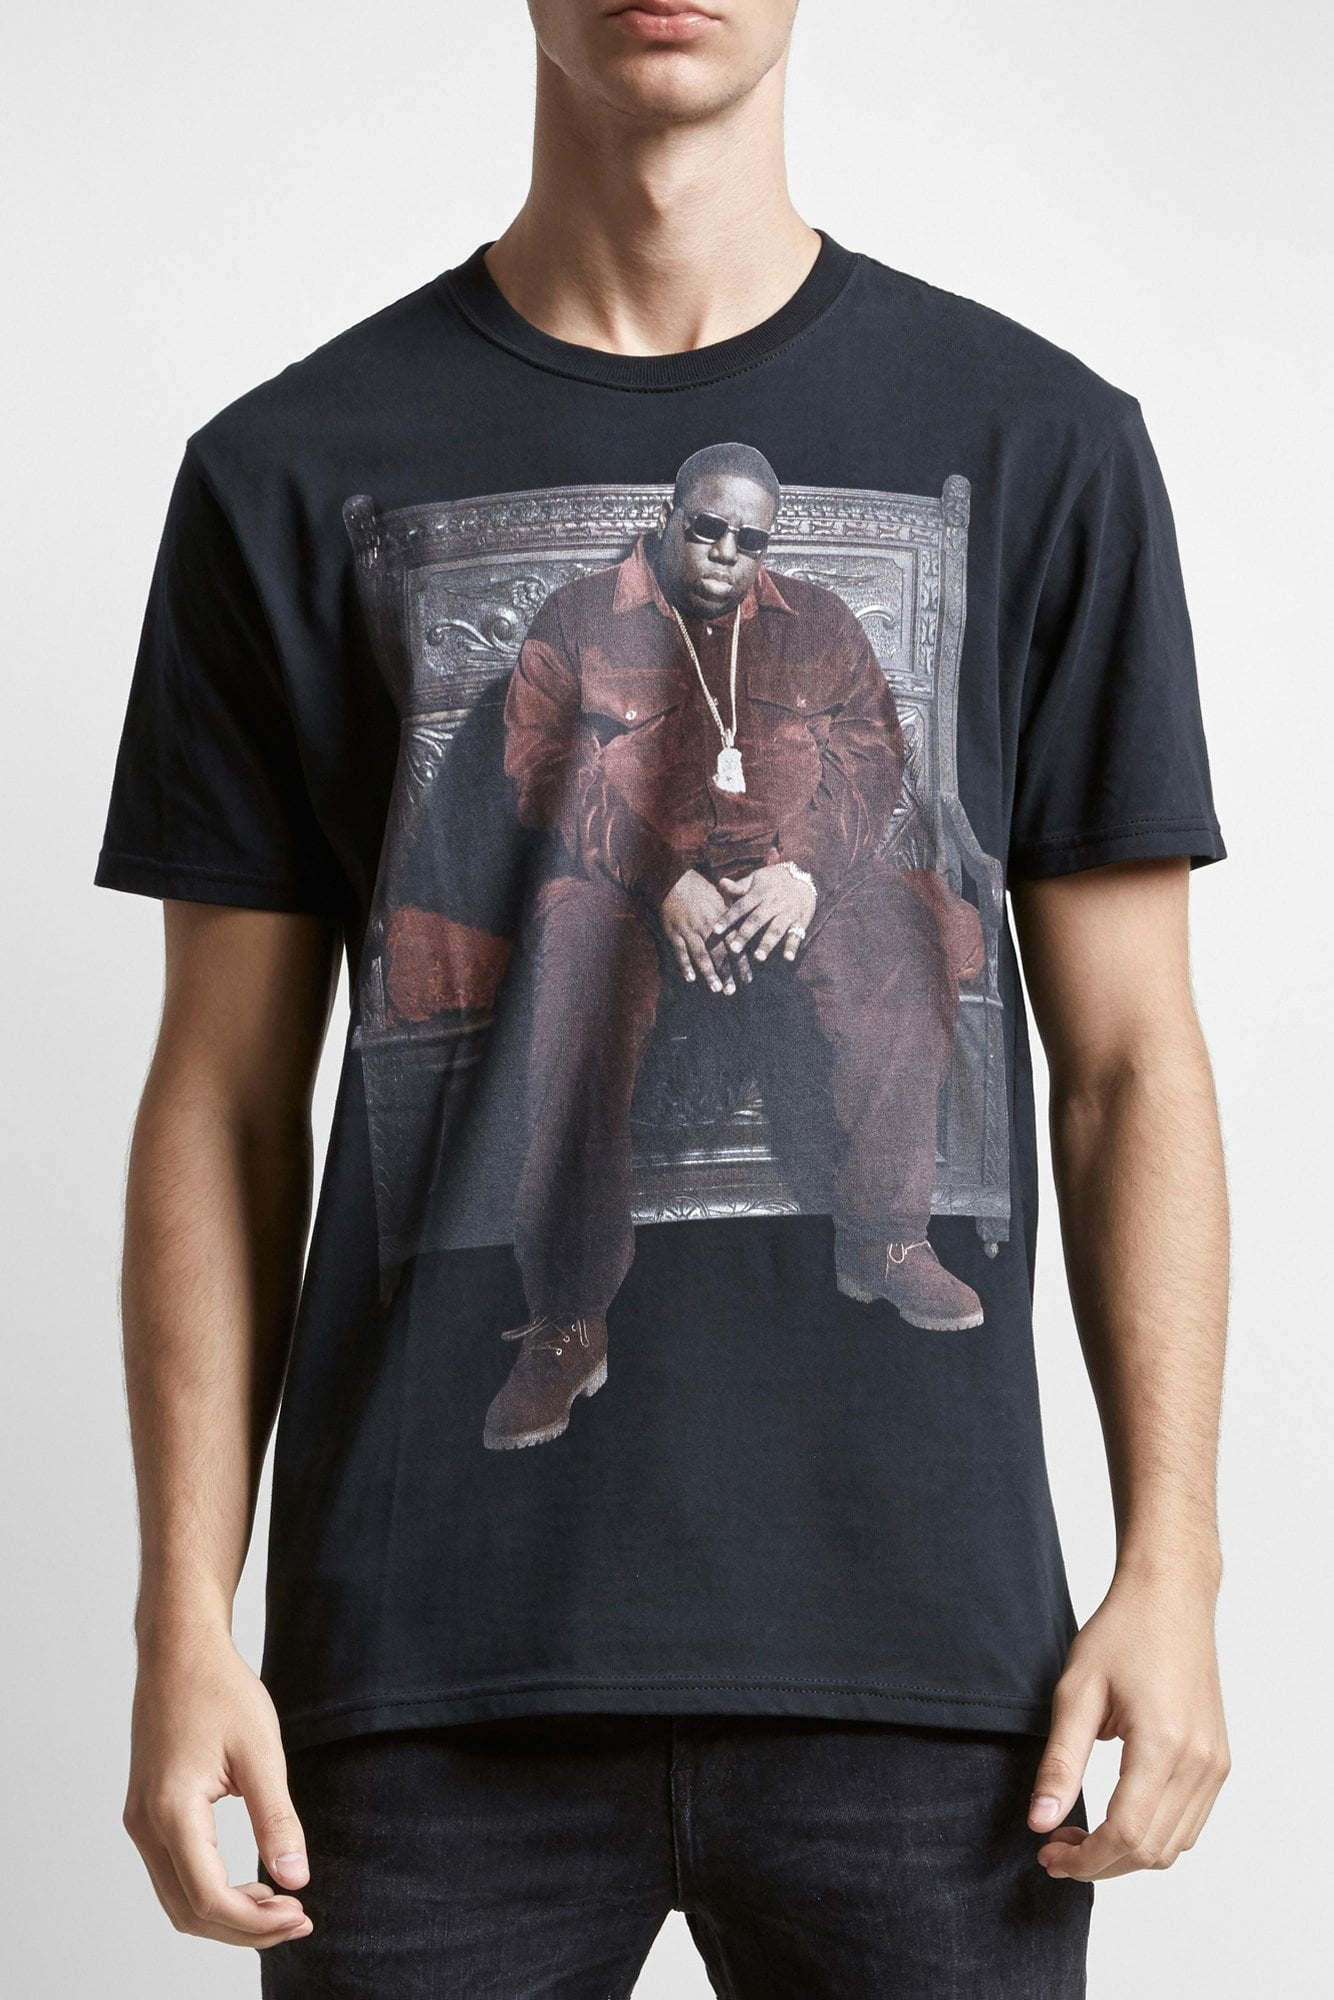 Biggie Throne Curtis T- Vintage Black